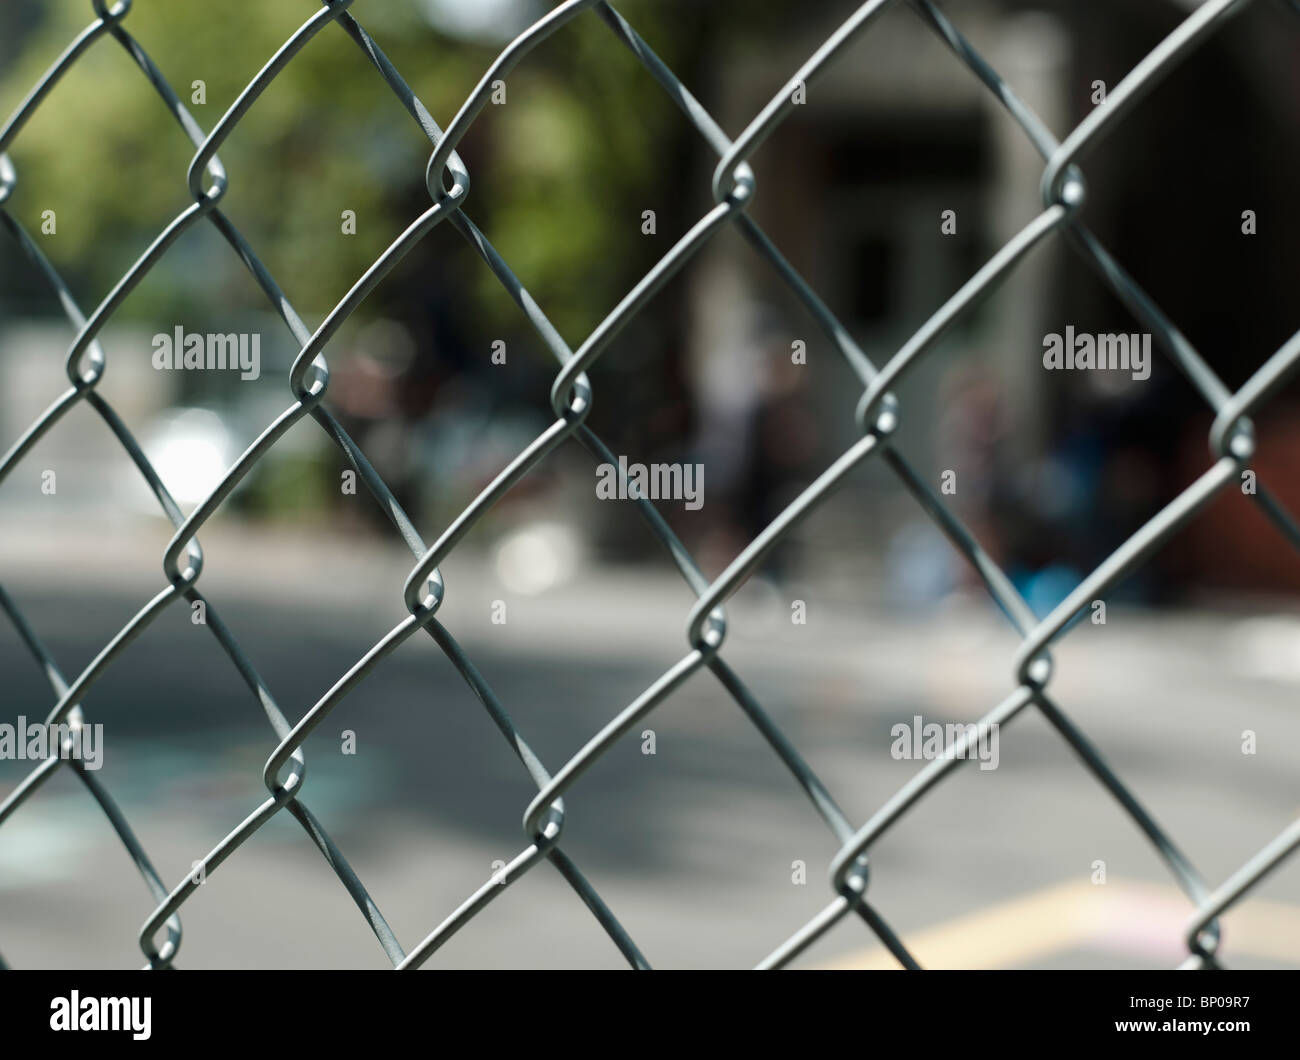 Metal Netting Stockfotos & Metal Netting Bilder - Alamy